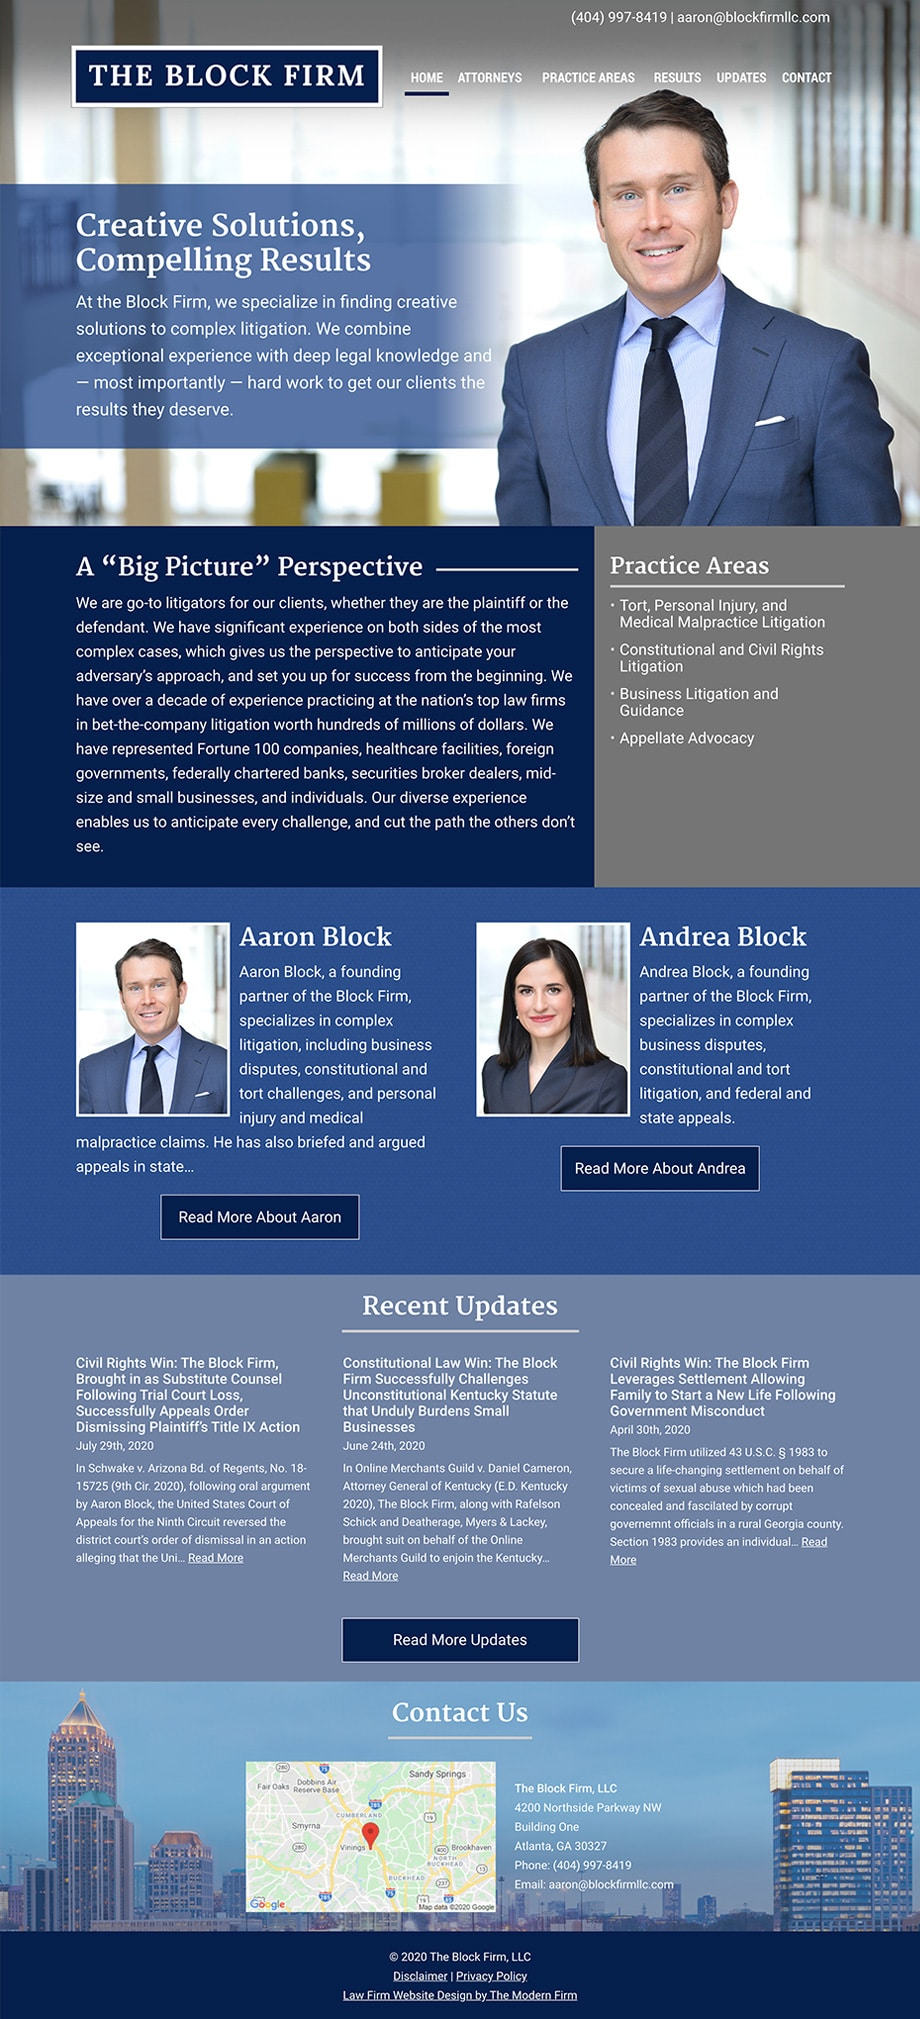 Law Firm Website Design for The Block Firm, LLC